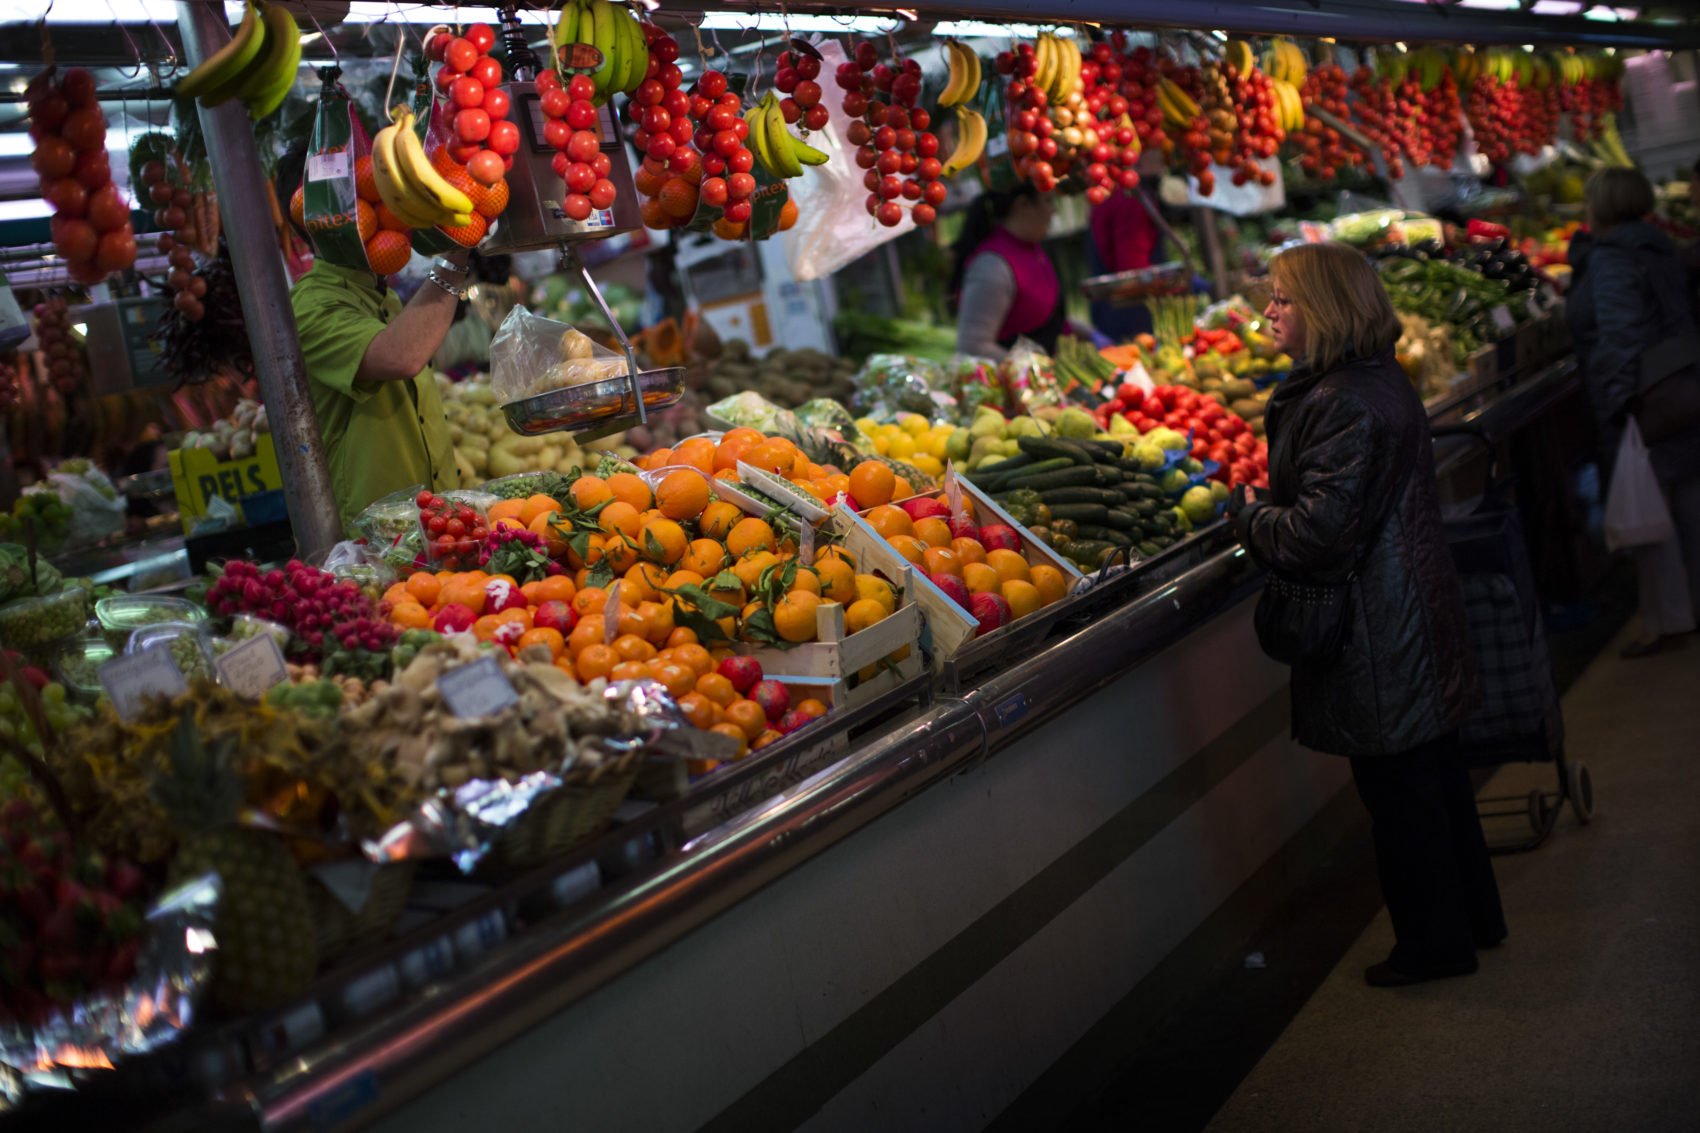 Why Is The Mediterranean Diet So Healthy? Study Lets Us Count The Ways